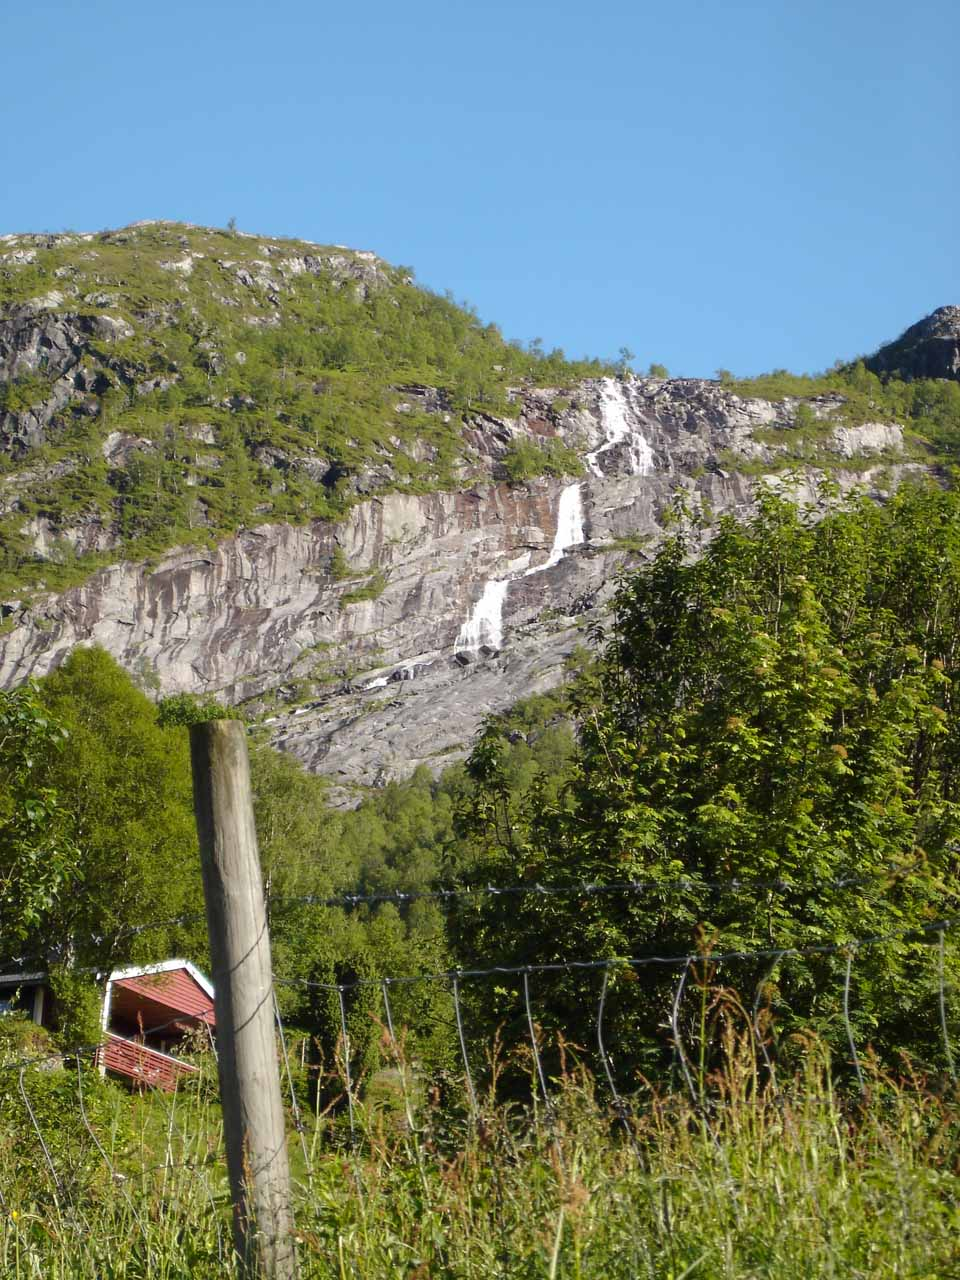 One of many waterfalls seen on the north-facing cliffs facing Viksdalvatnet as we drove east on the Road 610